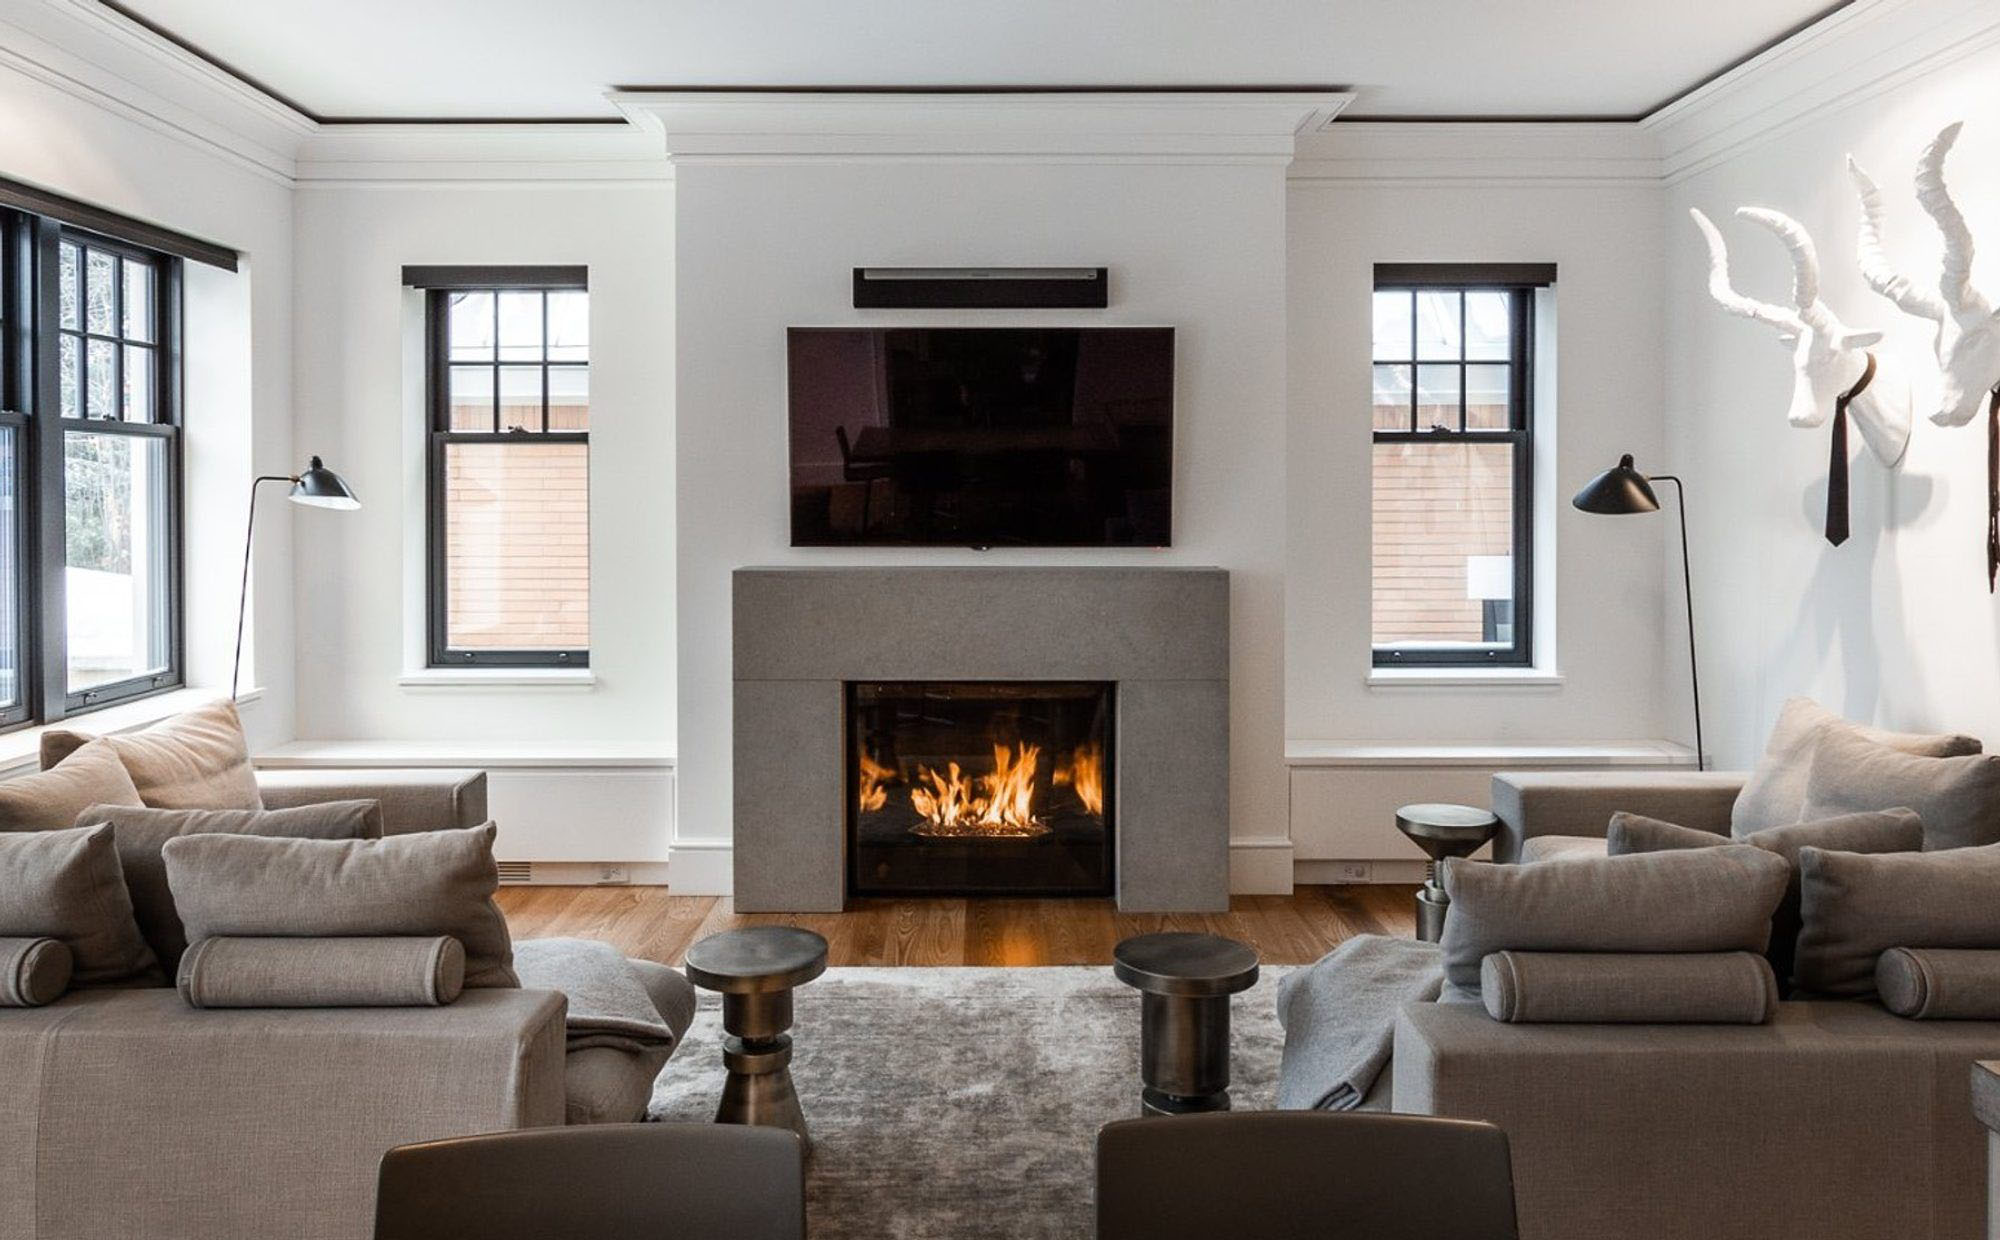 Beautiful modern style living room with warm grey sofas and matching grey area rug in front of a gas fireplace.